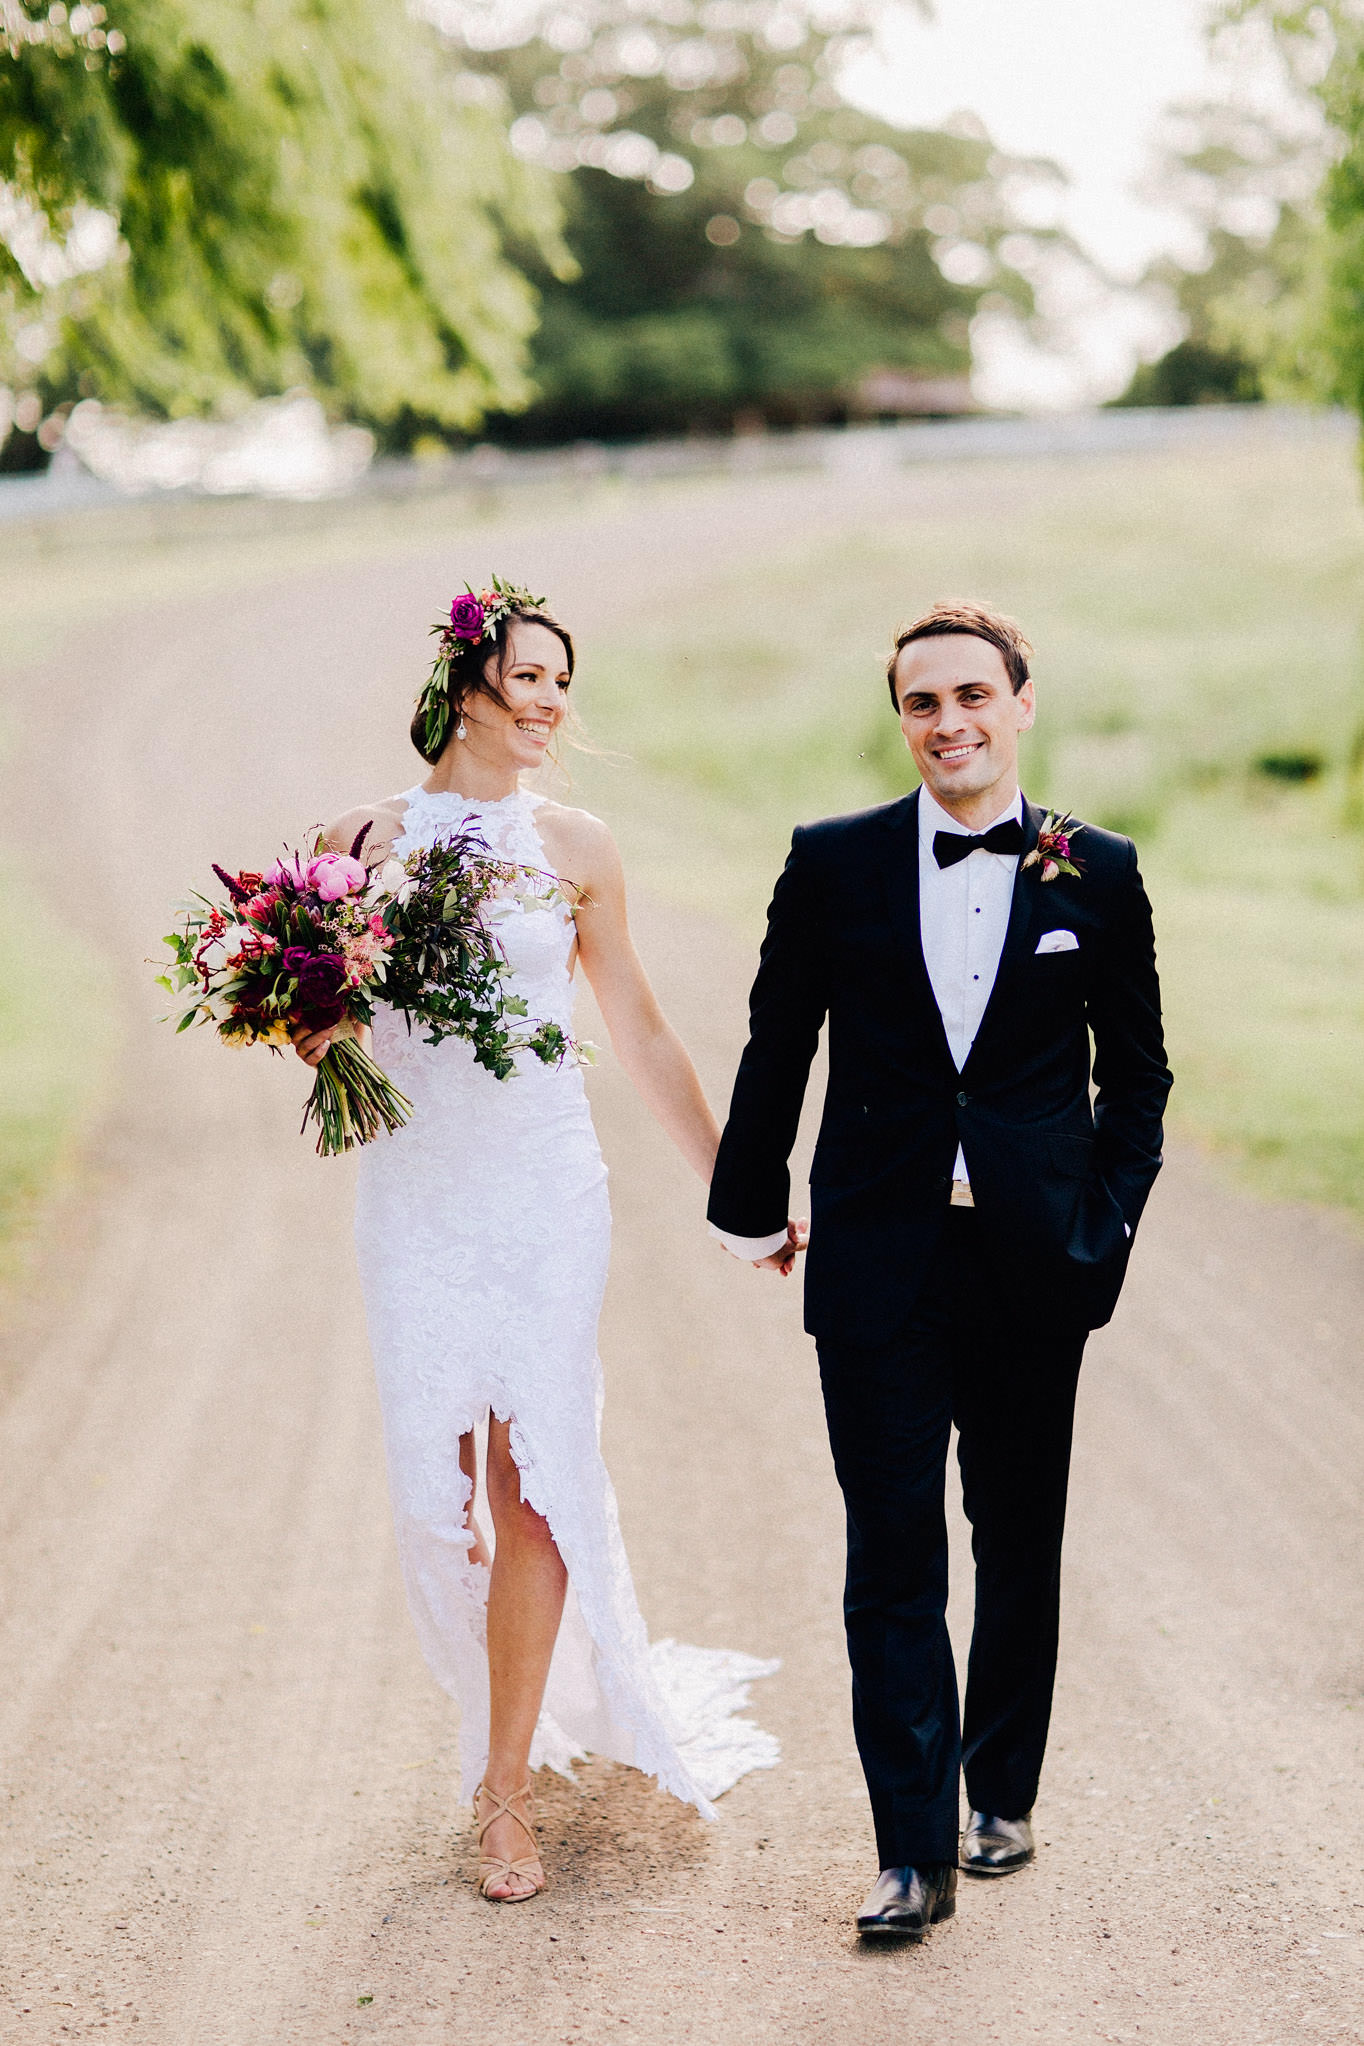 TocalHomestead_WeddingPhotography_LaurenAnnePhotography-1095.jpg